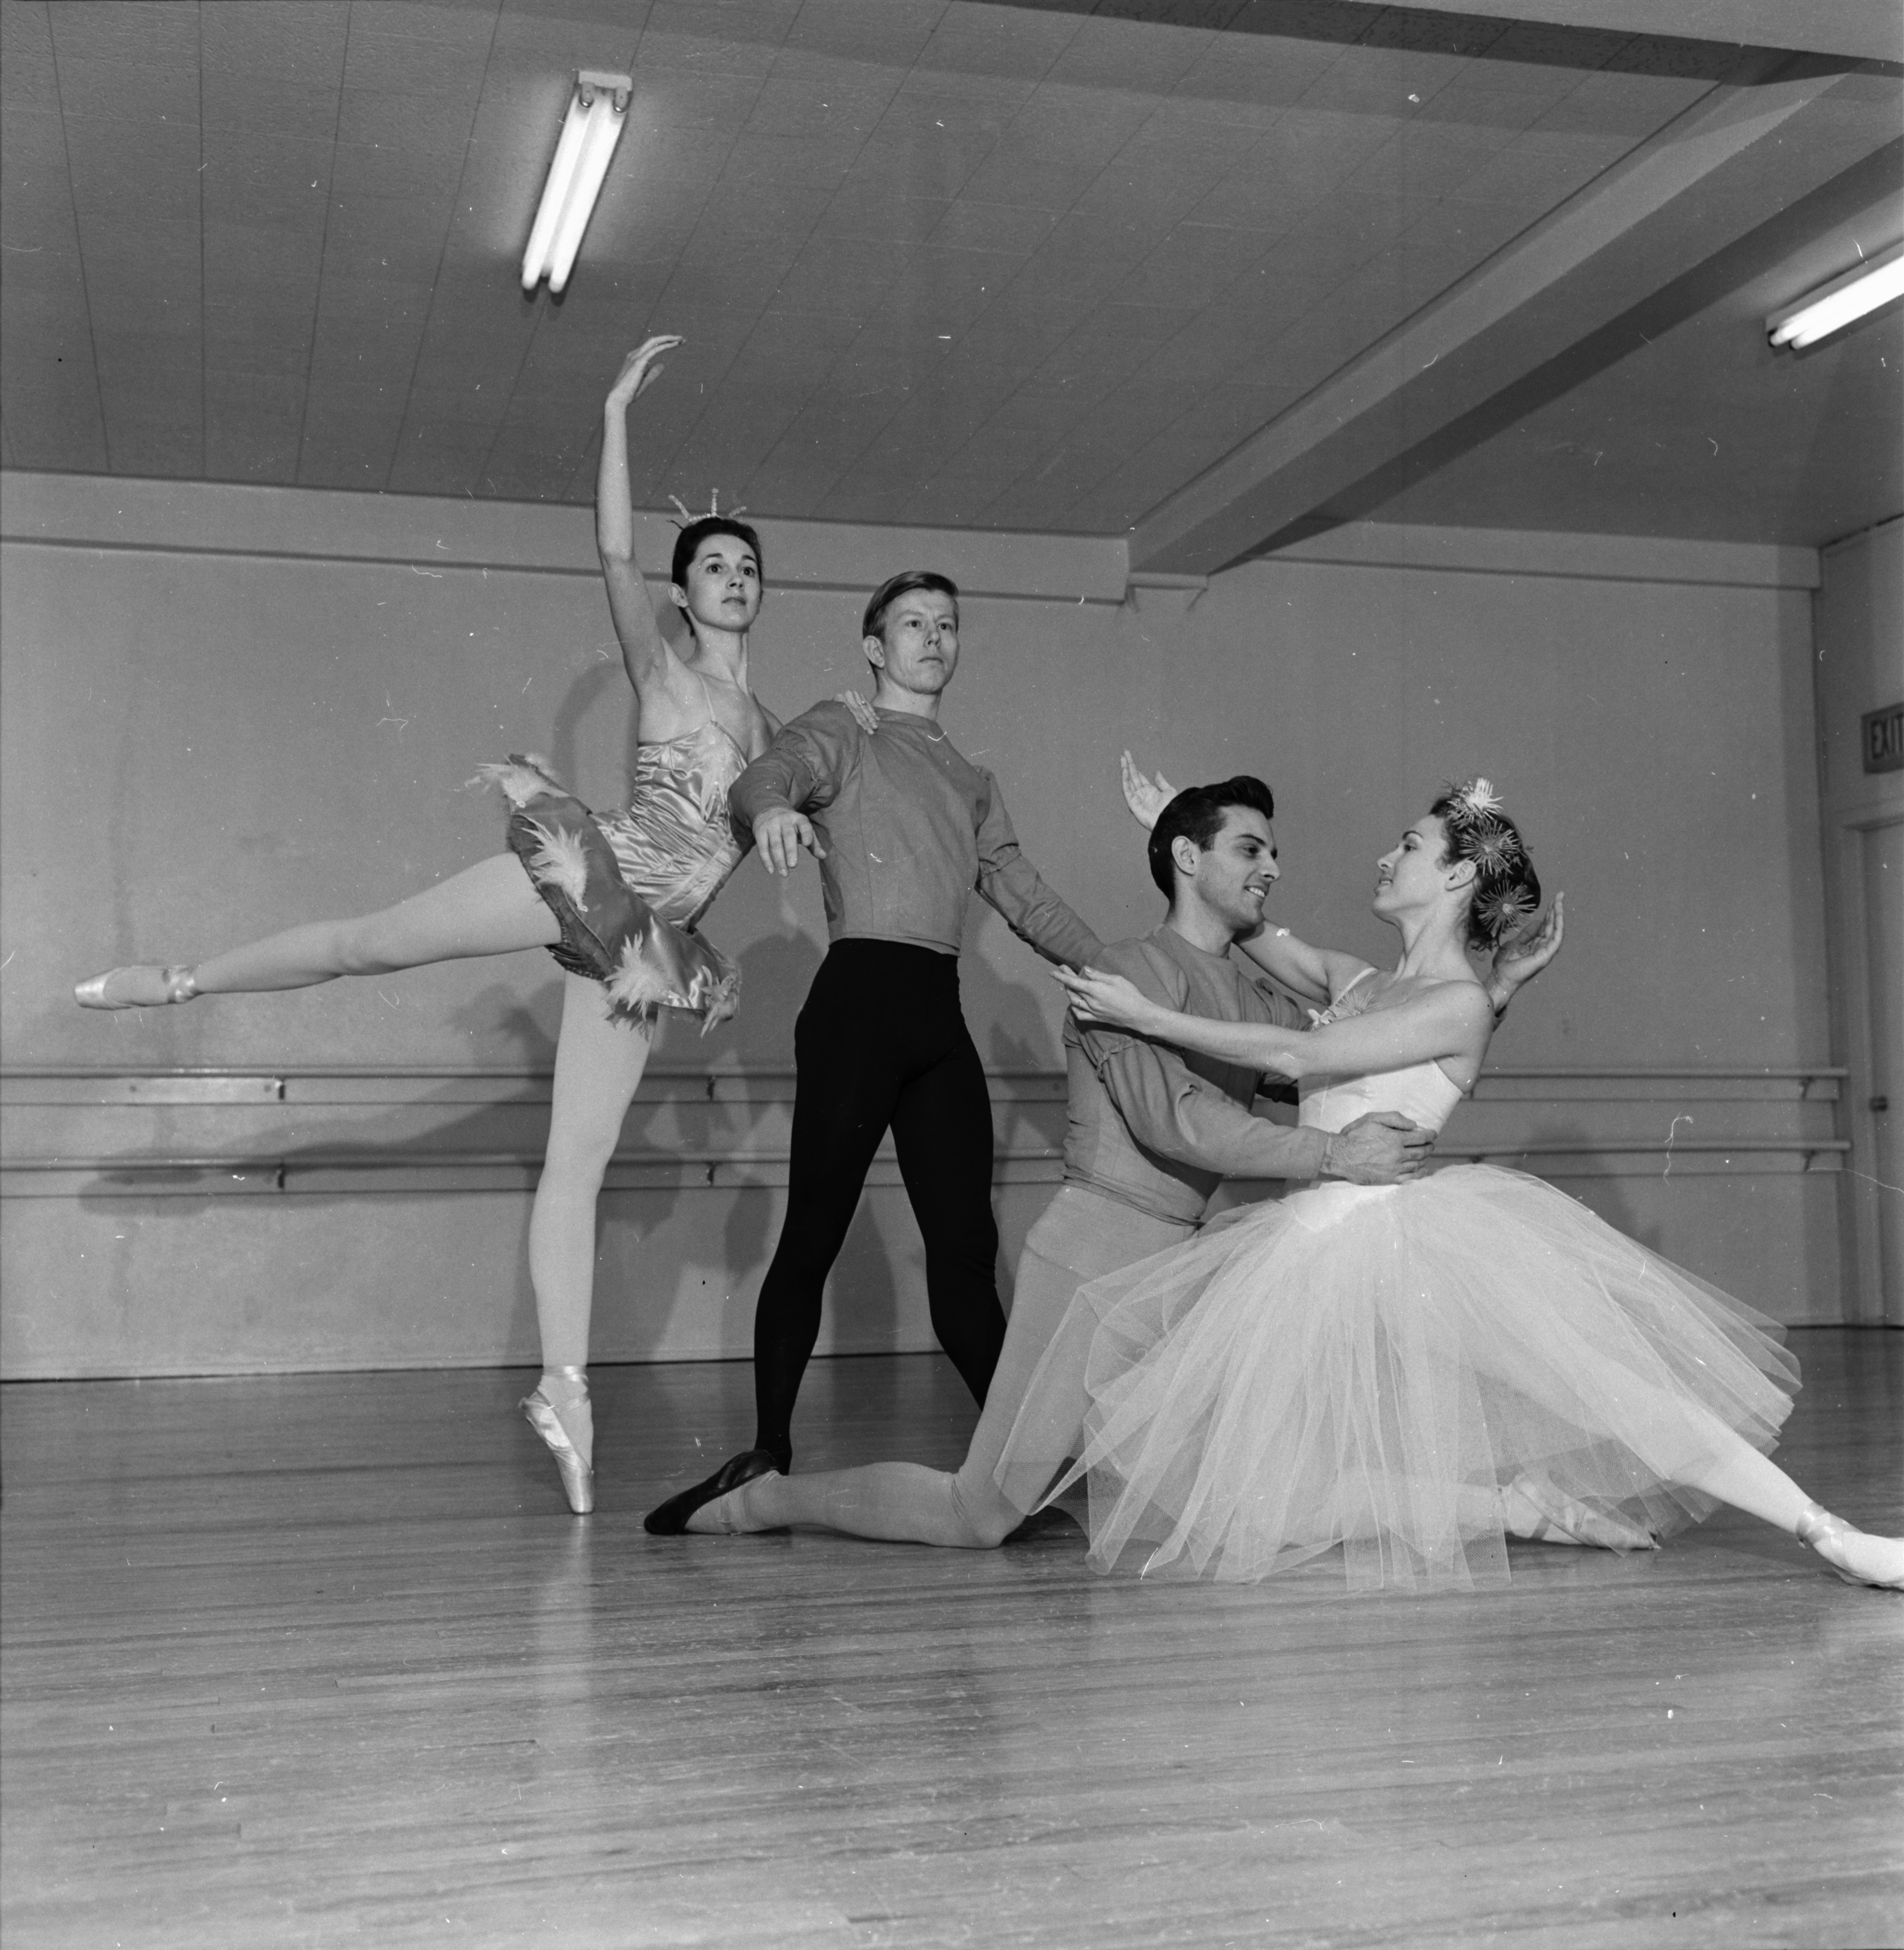 Members of the Ann Arbor Civic Ballet rehearse for the spring concert, April 1965 image